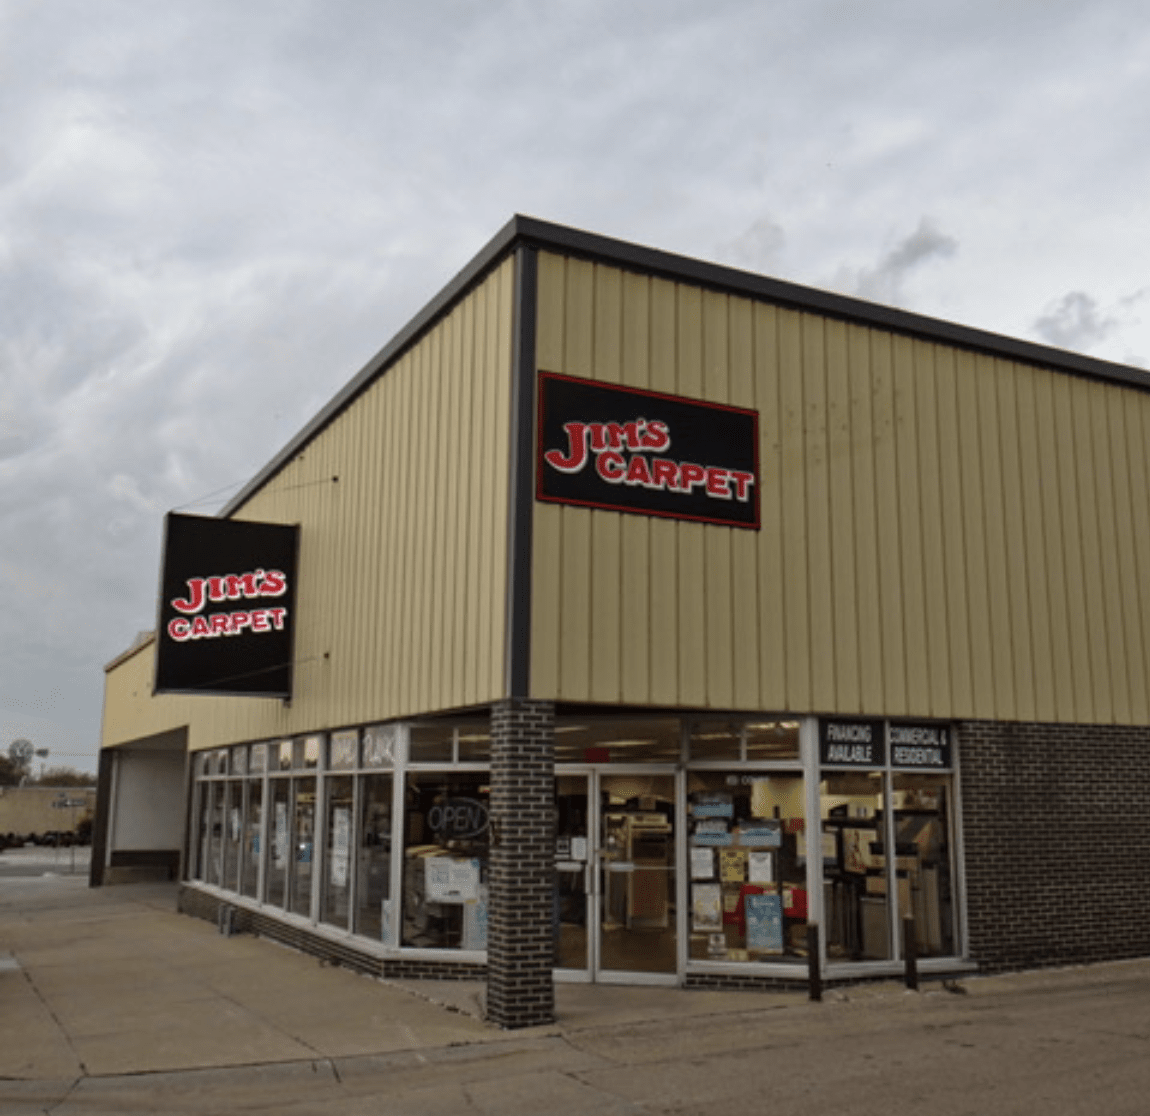 Visit us here at Jim's Carpet & Supplies in Beatrice, NE!